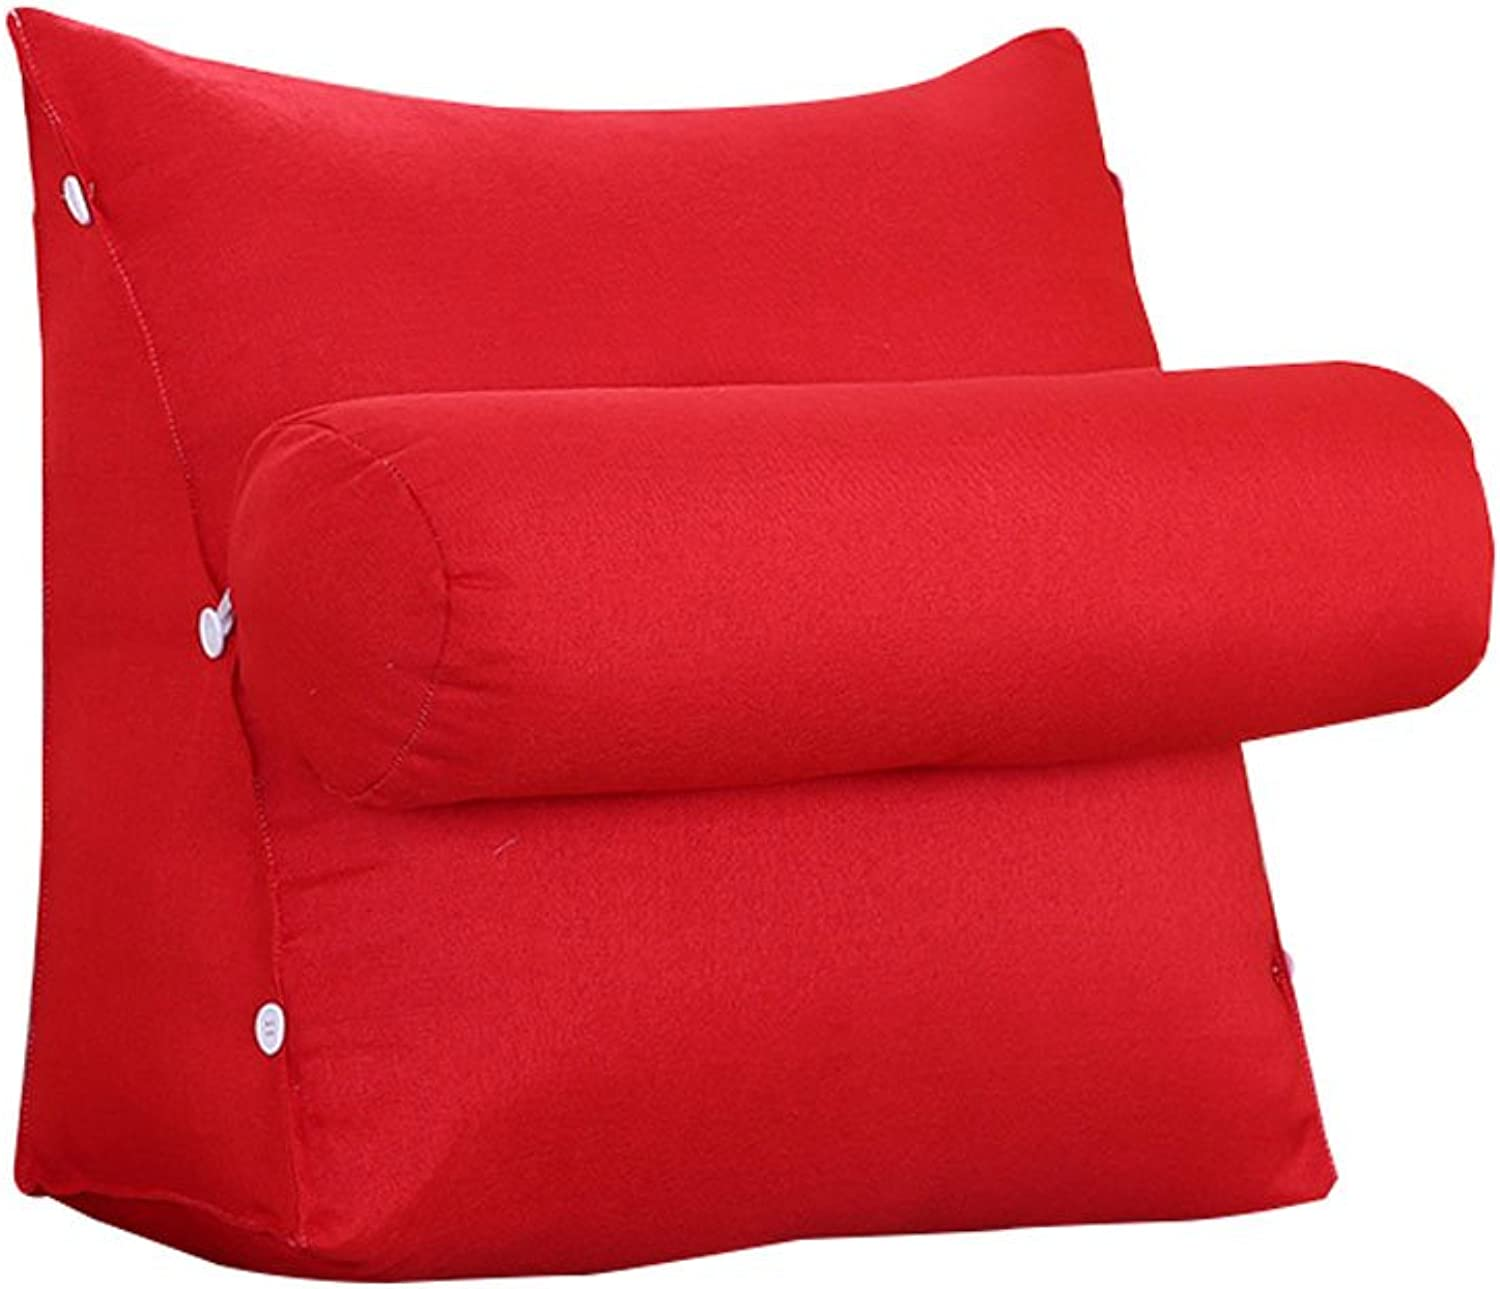 DDSS Bed cushion Triangle Headboard Pillow Sofa Bed Headrest with Headrest Lumbar Pillow Backrest Waist Pads Office Pillow Bay Window Cushion Back Pure color  -  (color   B, Size   45cm20cm50cm)